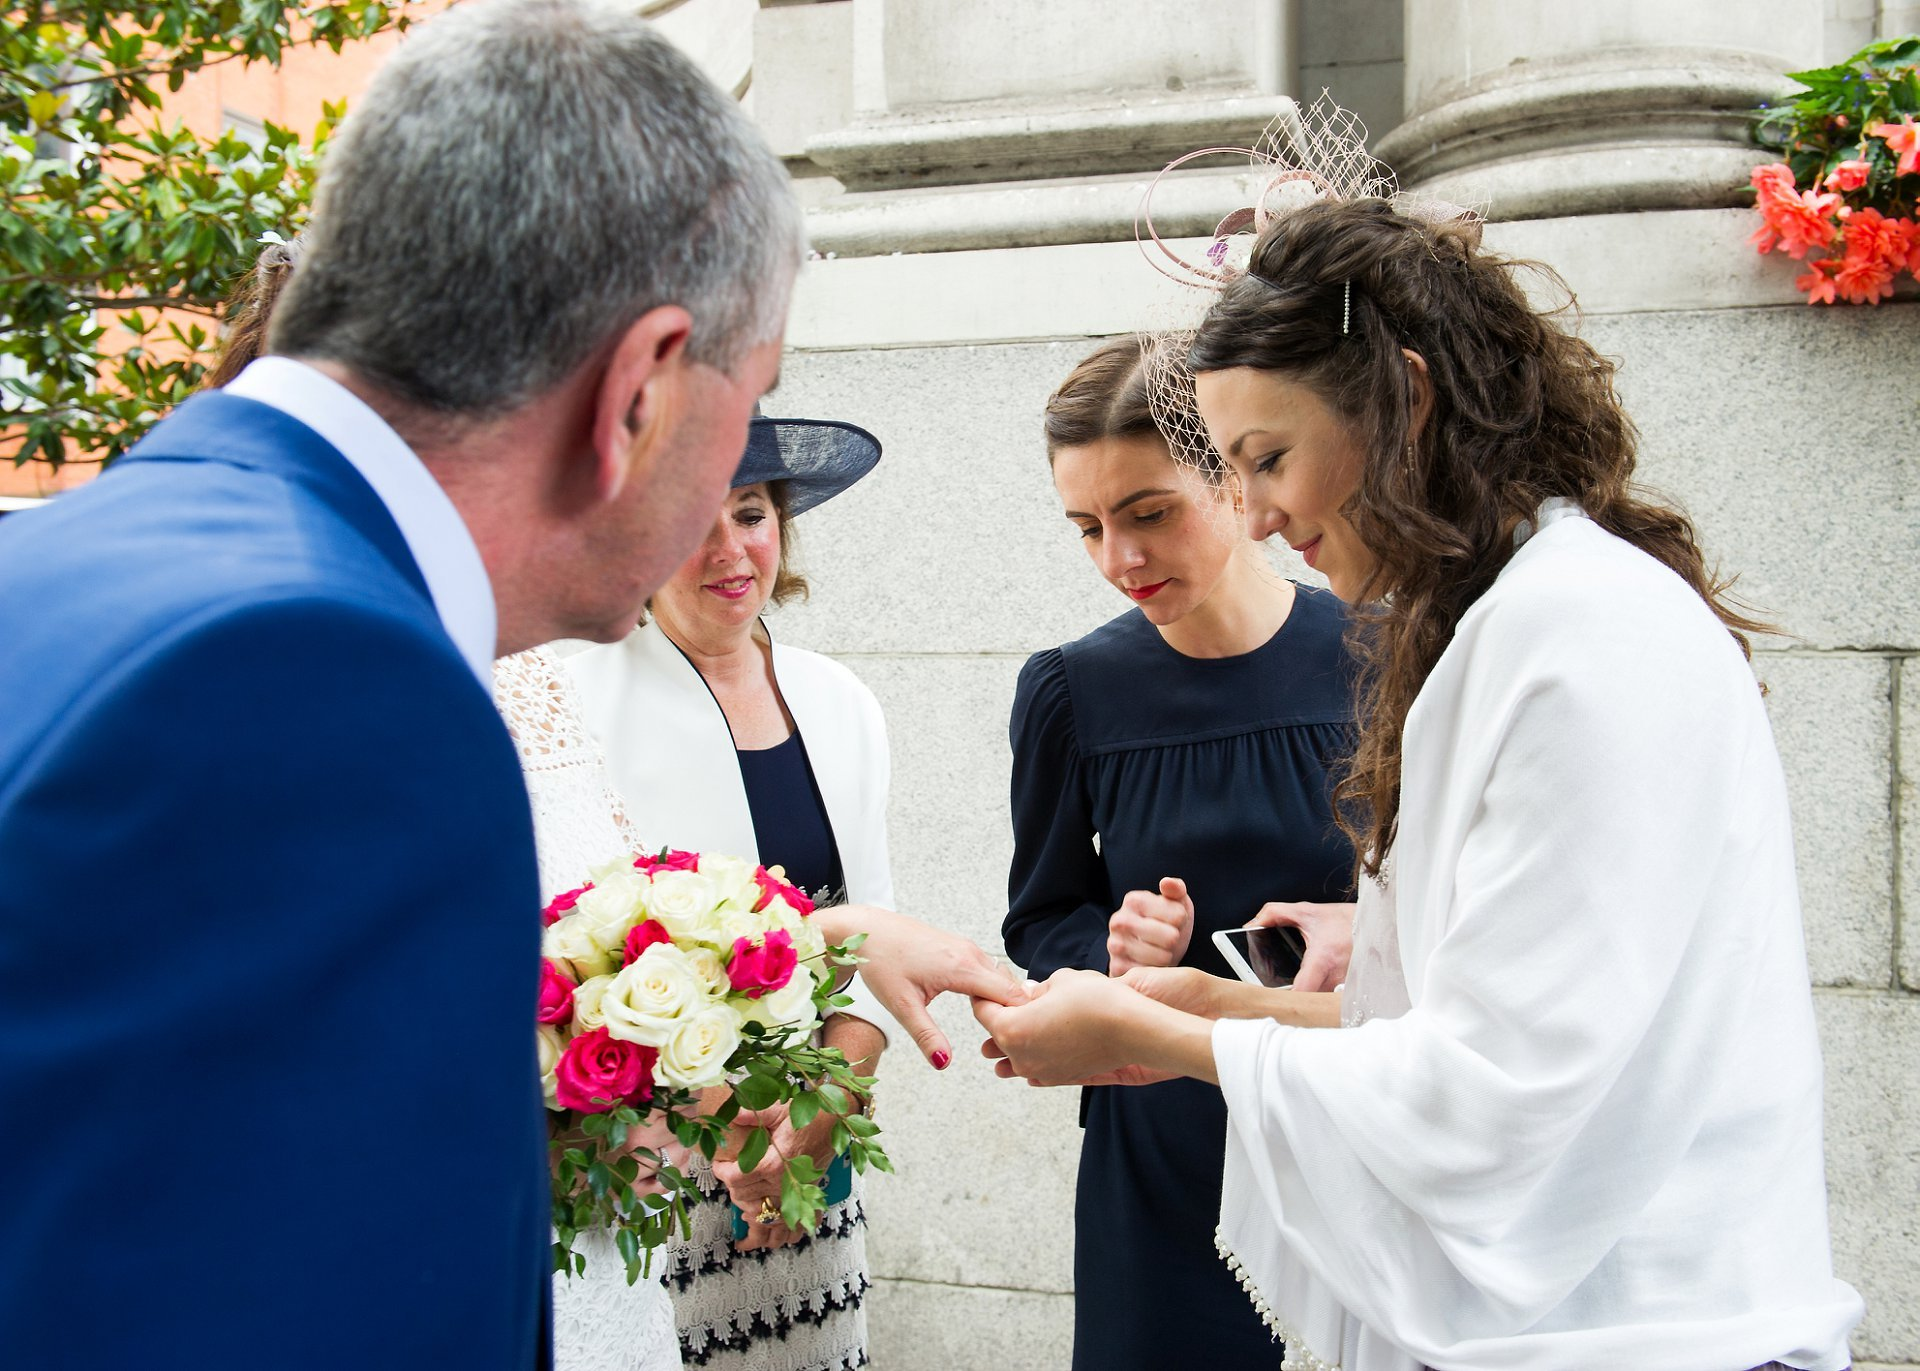 Wedding guests admire the bride's new wedding ring outside Chelsea Old Town Hall